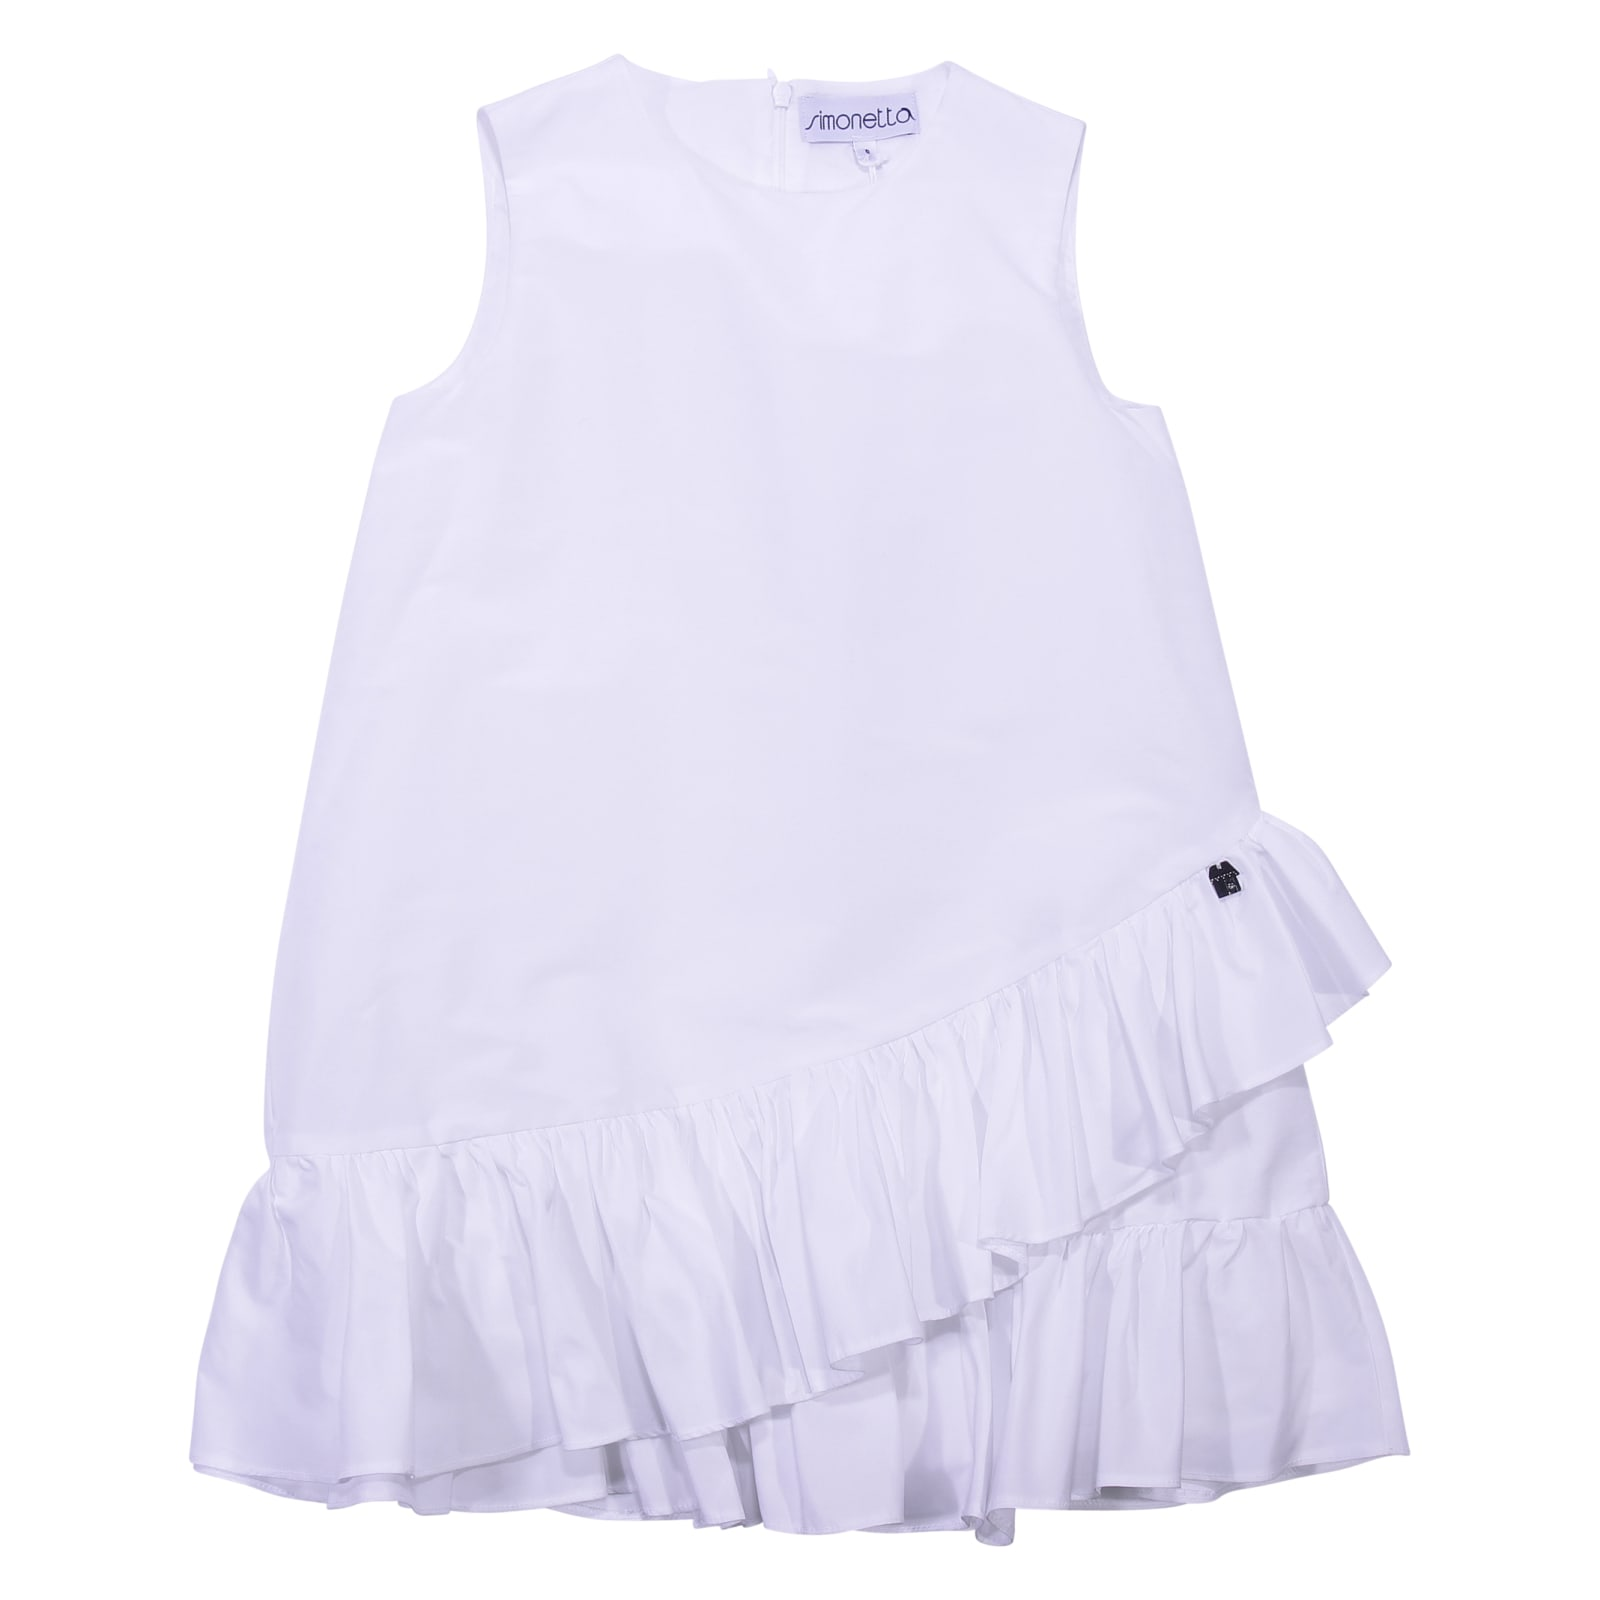 Simonetta White Ruffled Dress